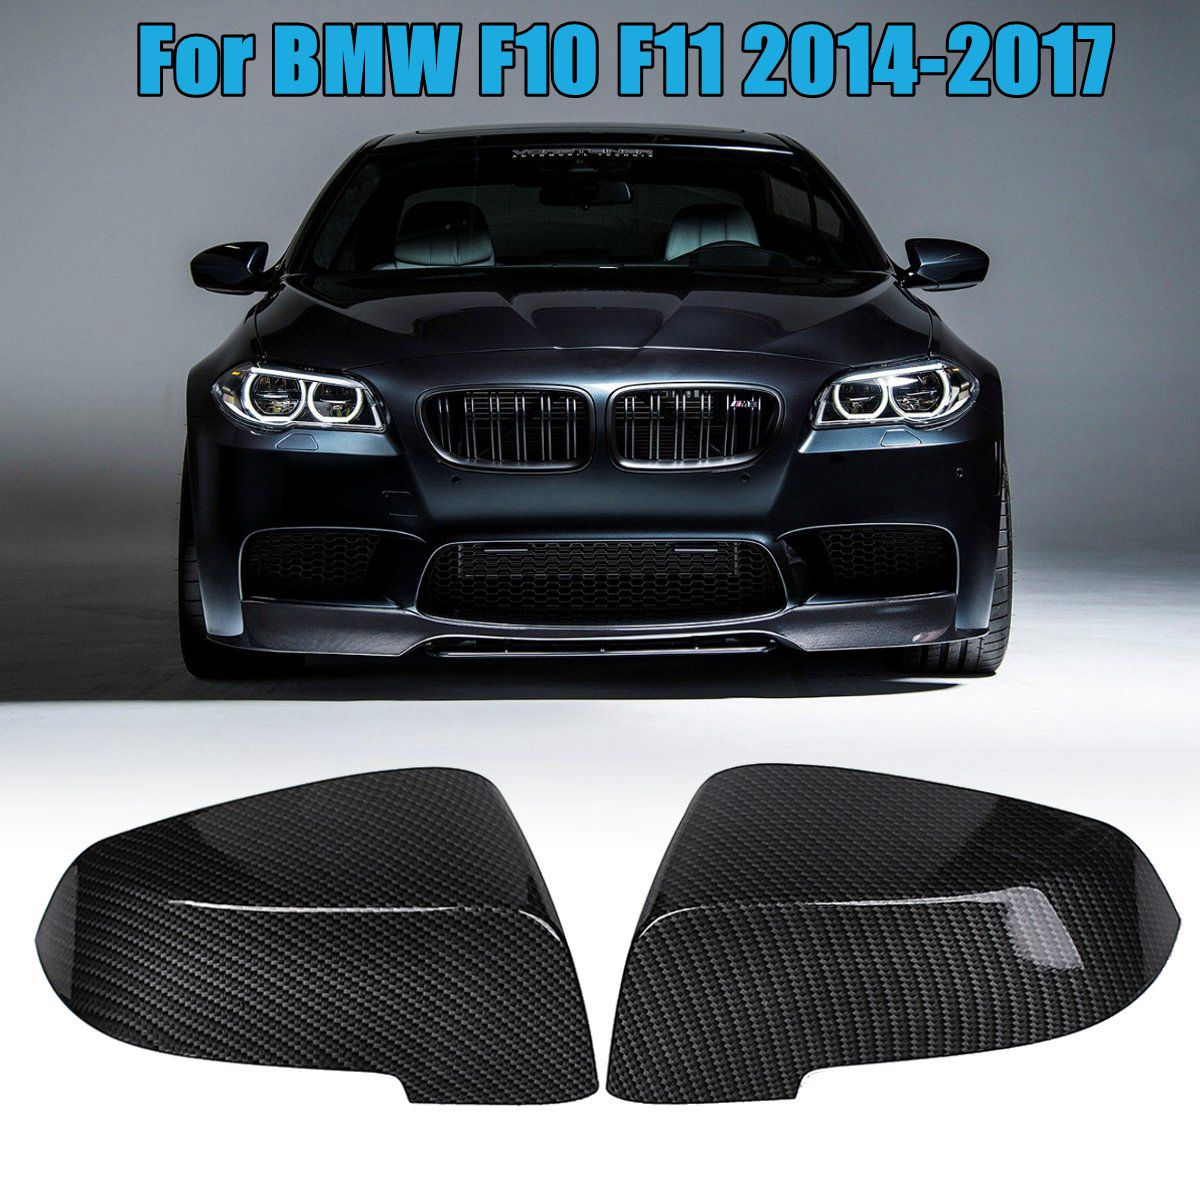 1 Pair Carbon Fiber Side Wing Replacement Rearview Mirror Cover Cap for BMW F10 F11 2014 2015 2016 2017